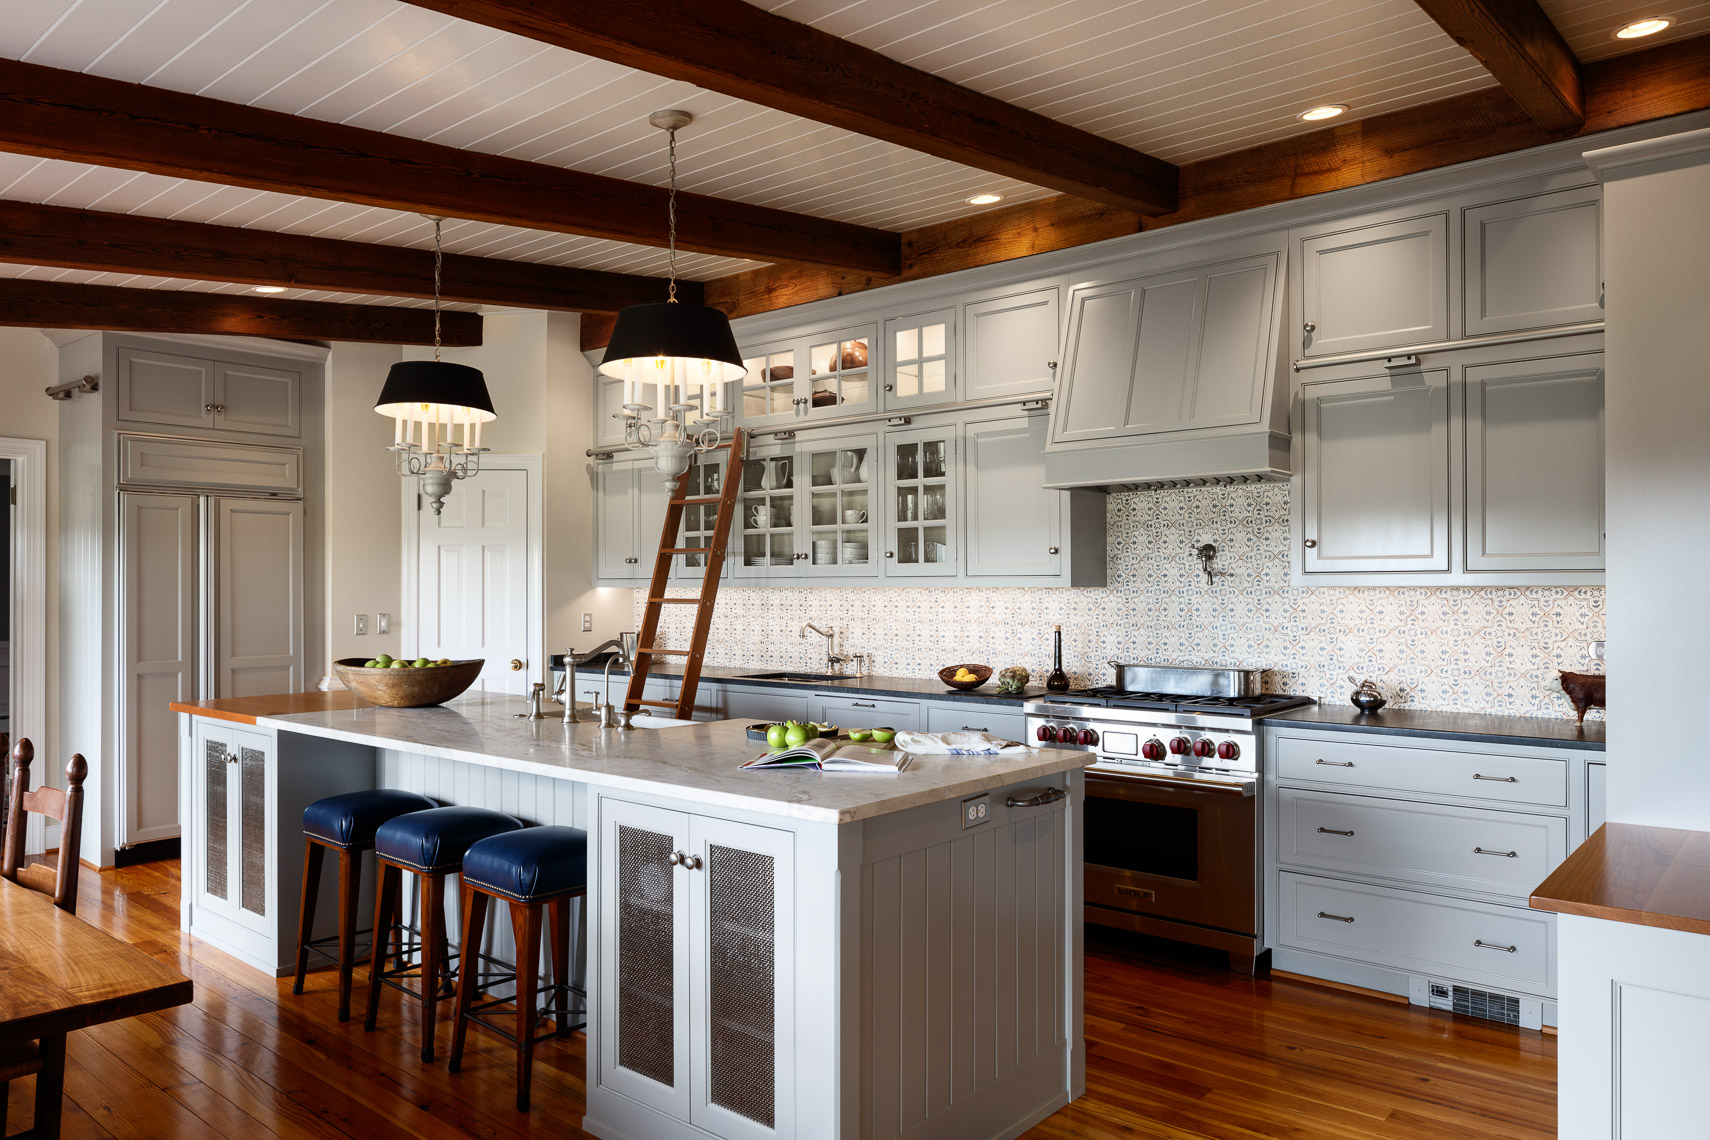 Farmhouse kitchen renovation with Antique beams pulled from barn on the farm